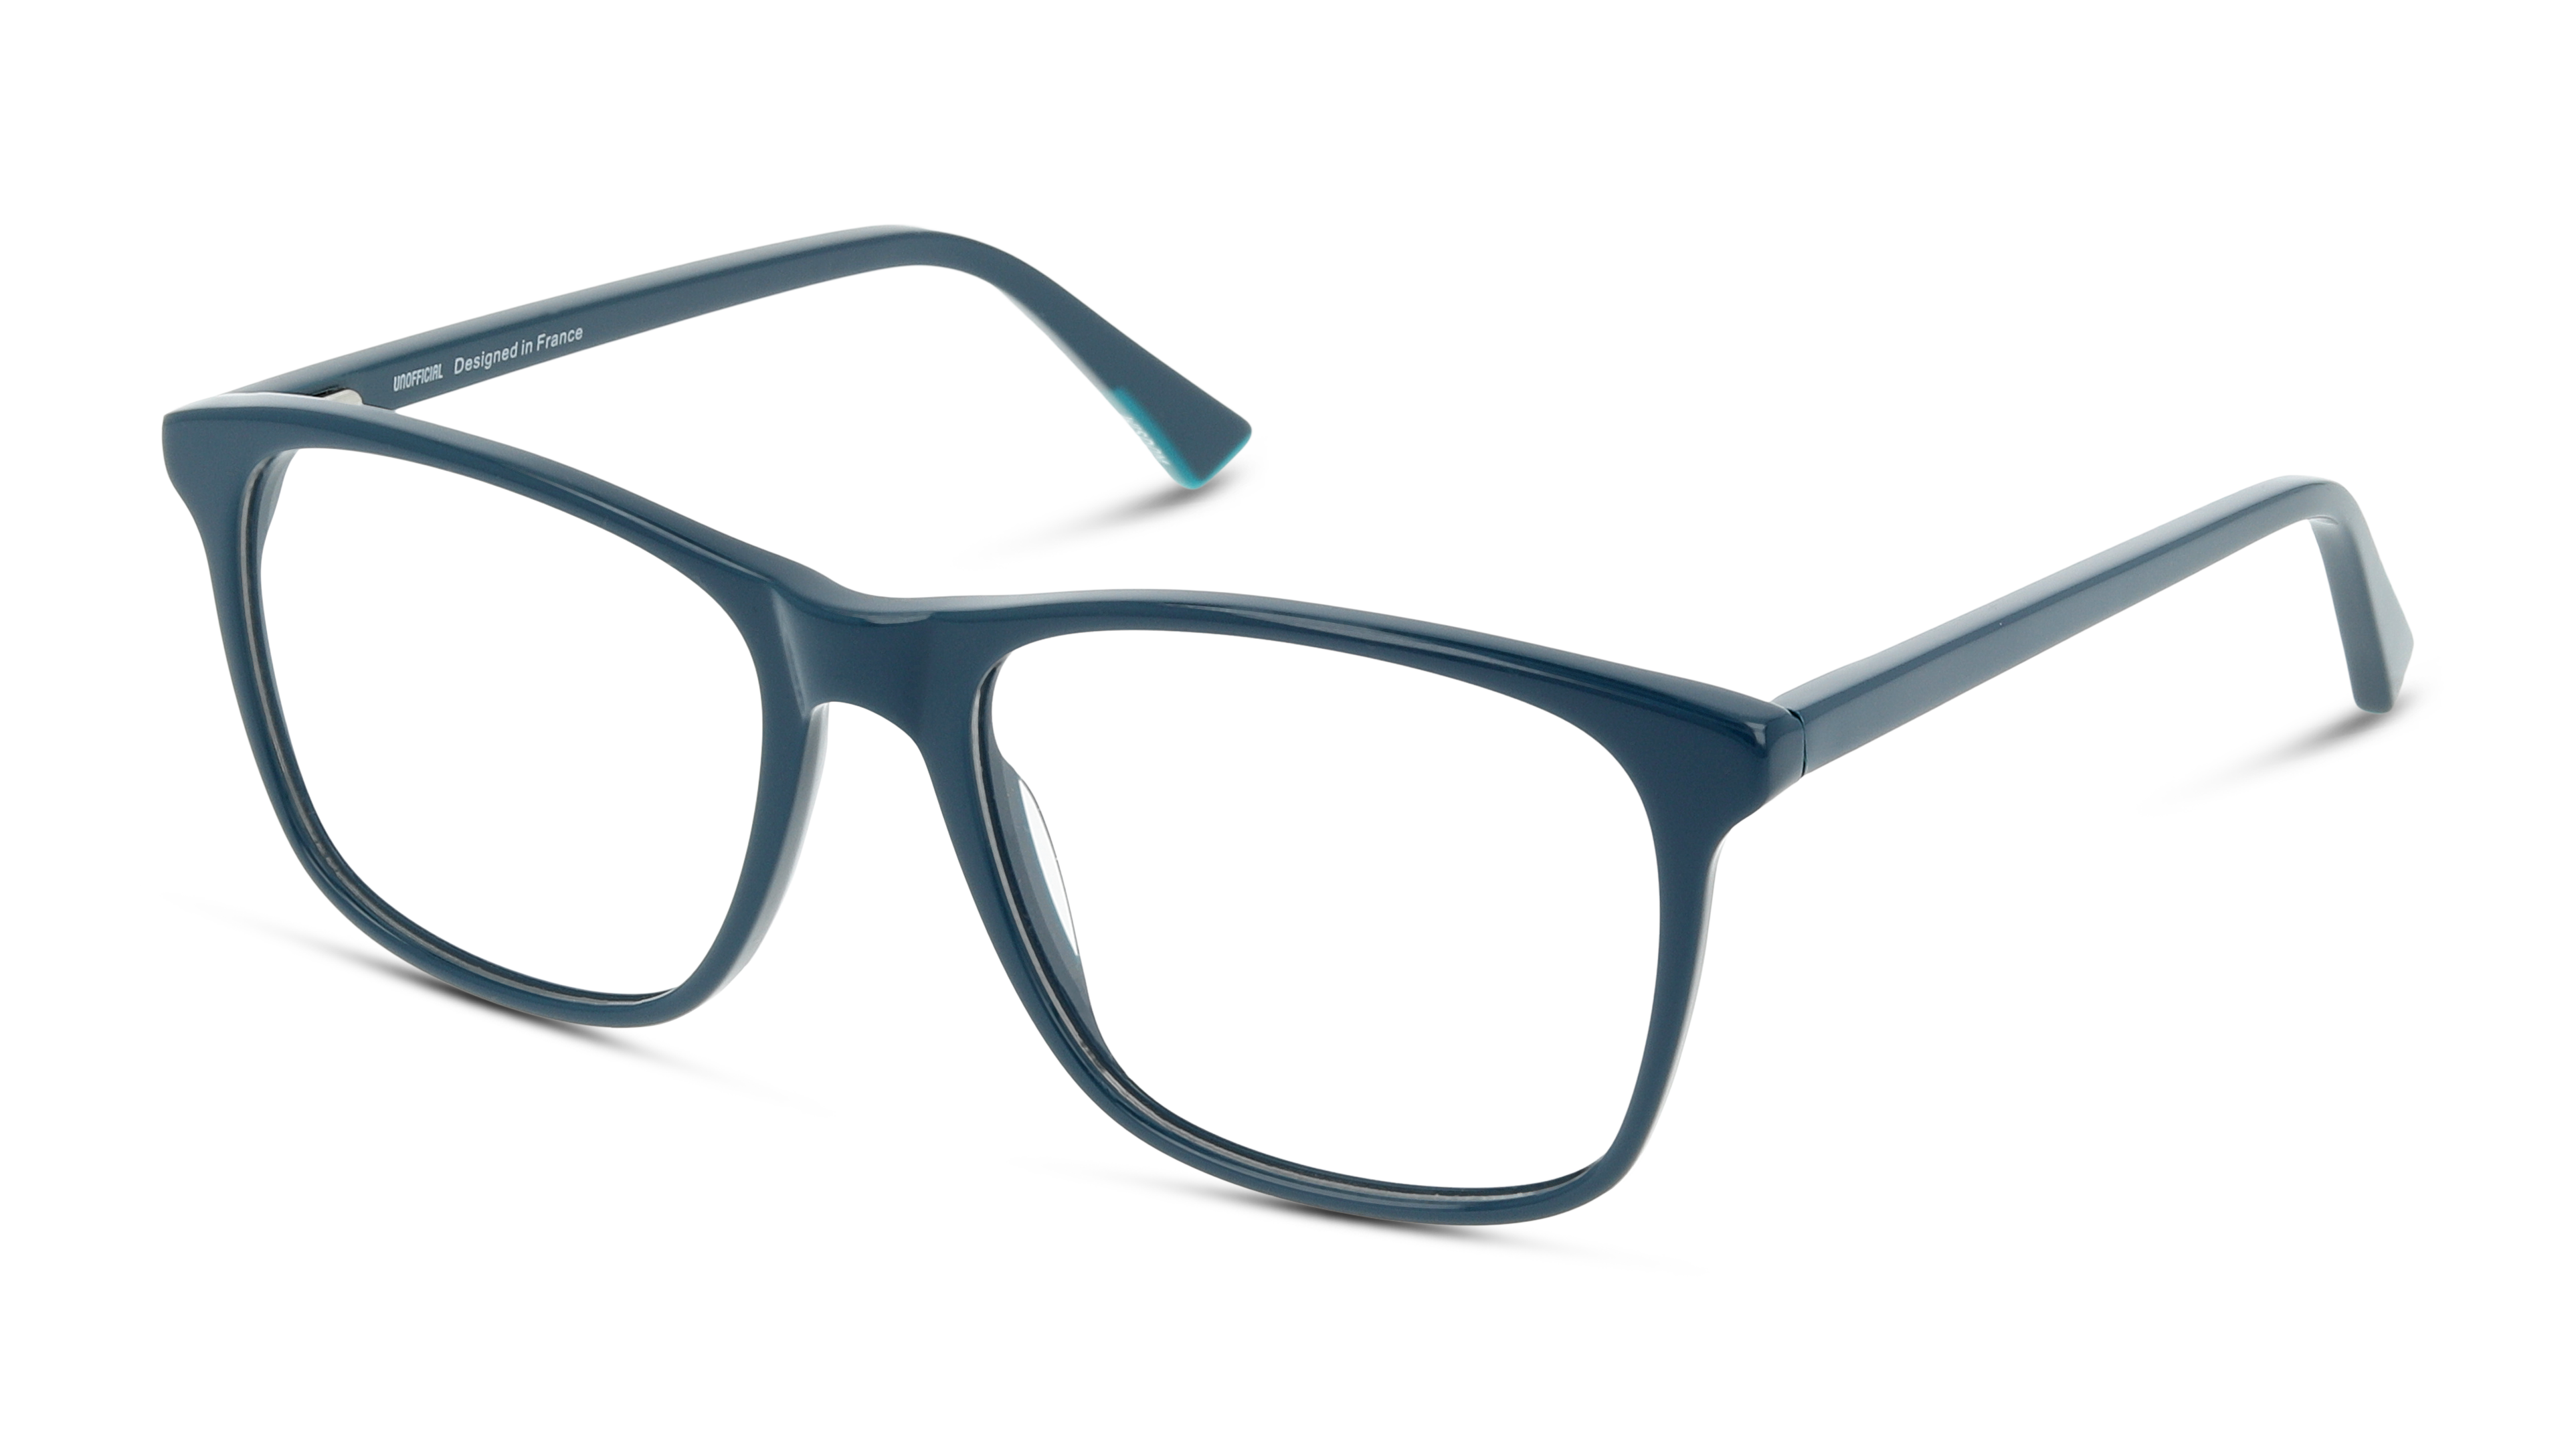 Angle_Left01 Unofficial Unoffic UNOM0002 MM00 54/17 Blauw